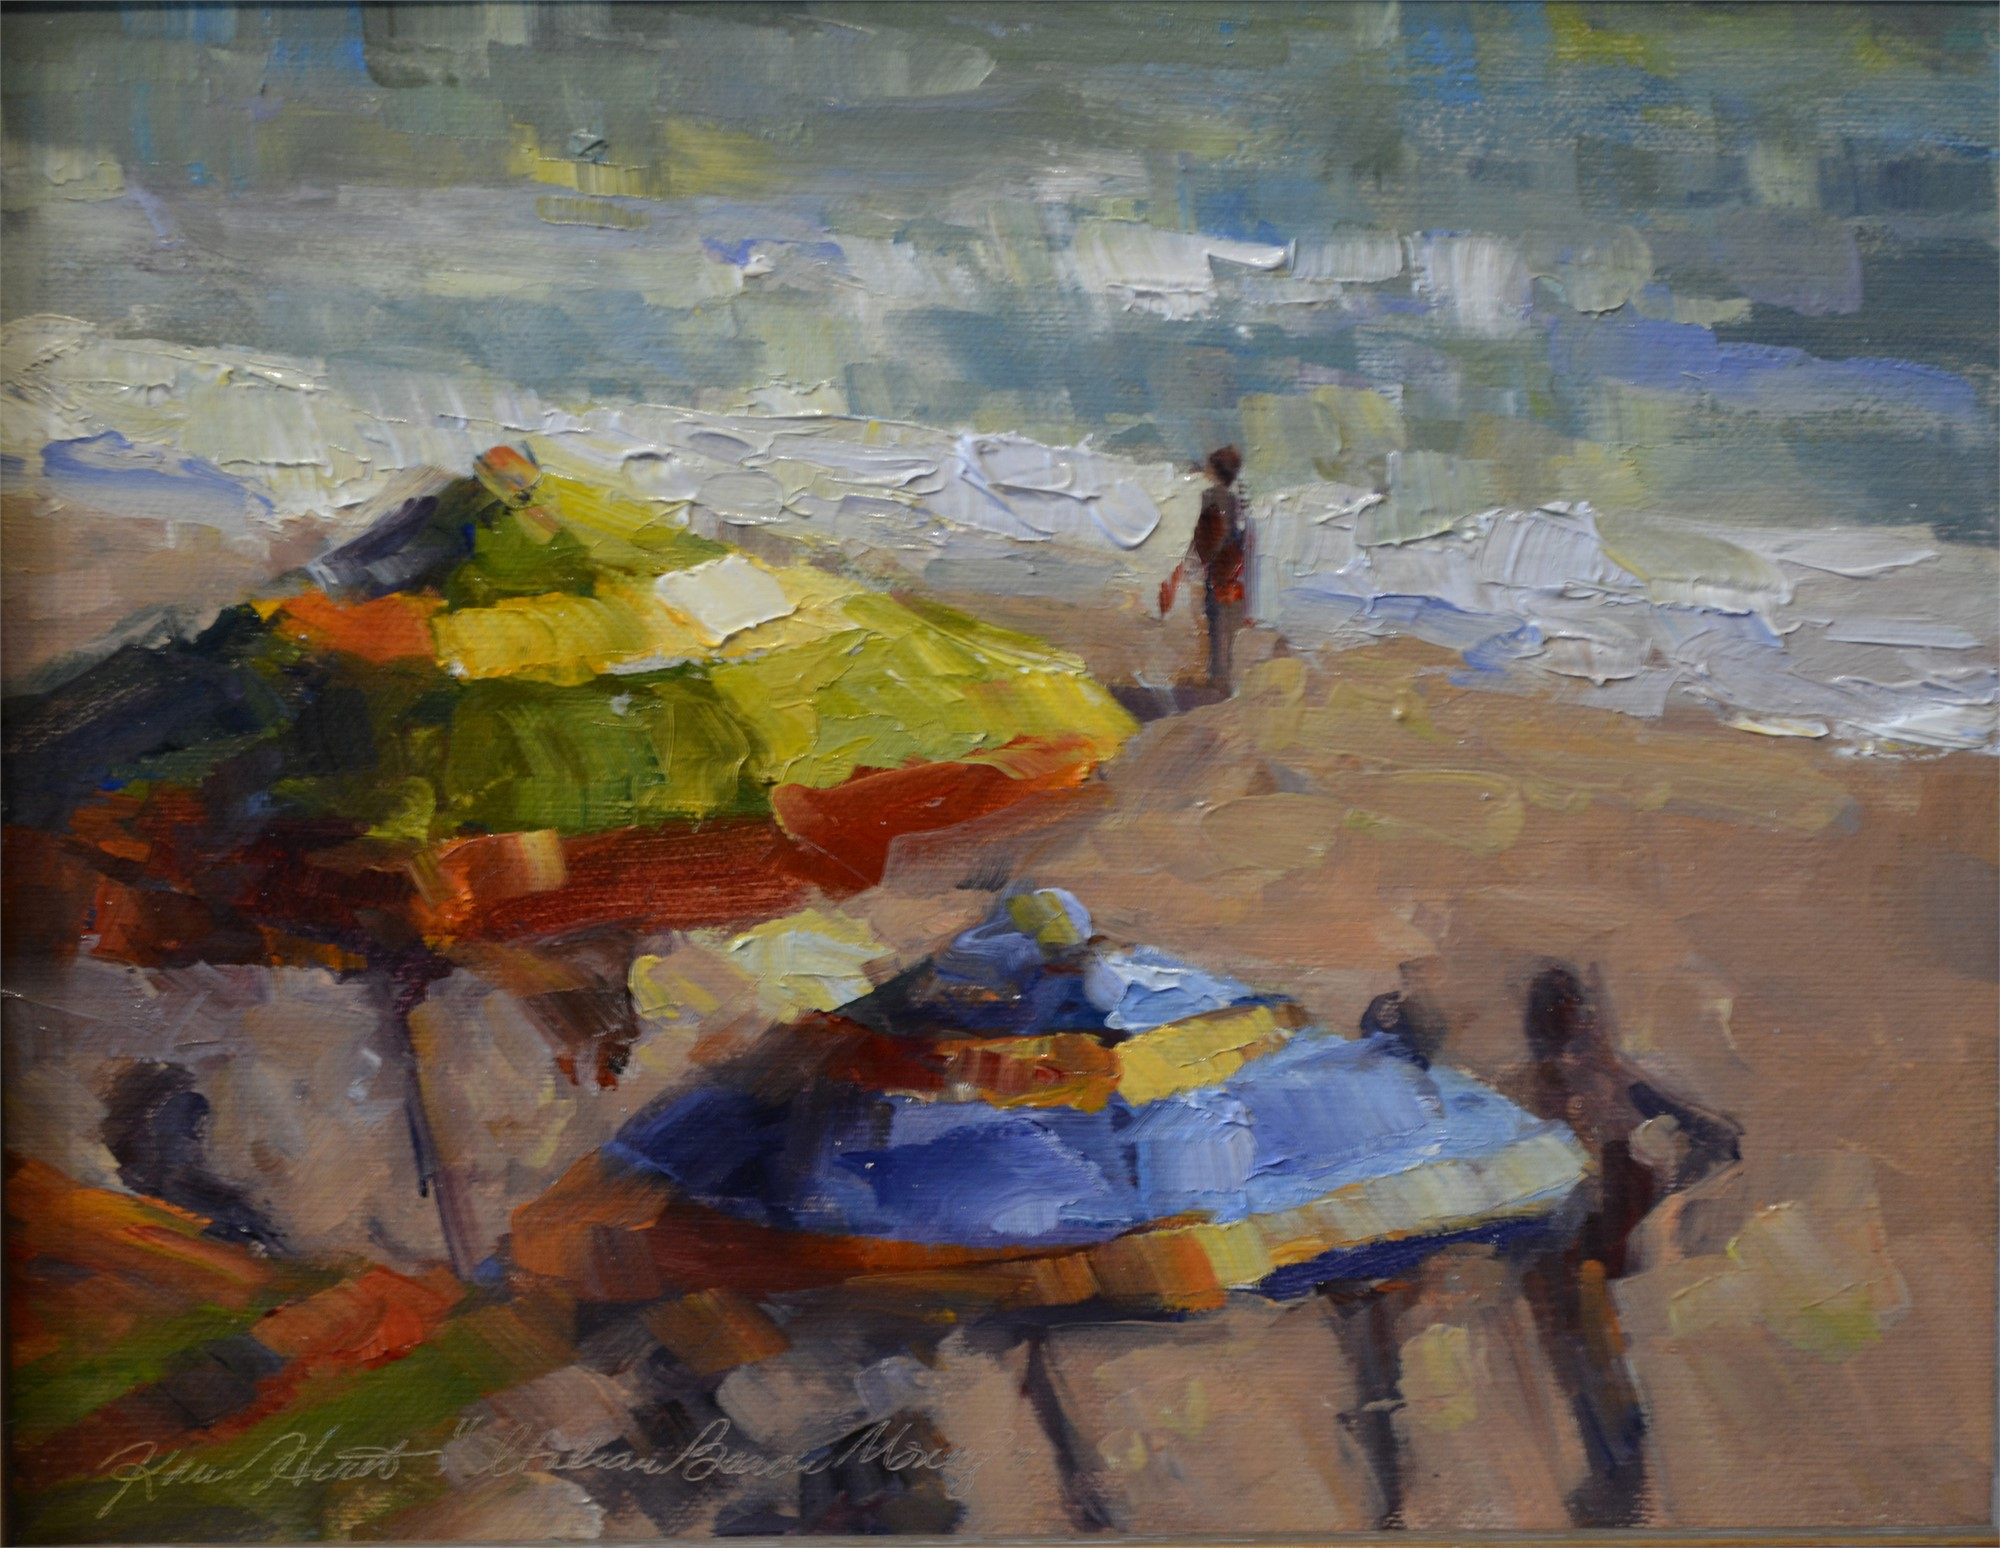 Italian Beach Morning by Karen Hewitt Hagan